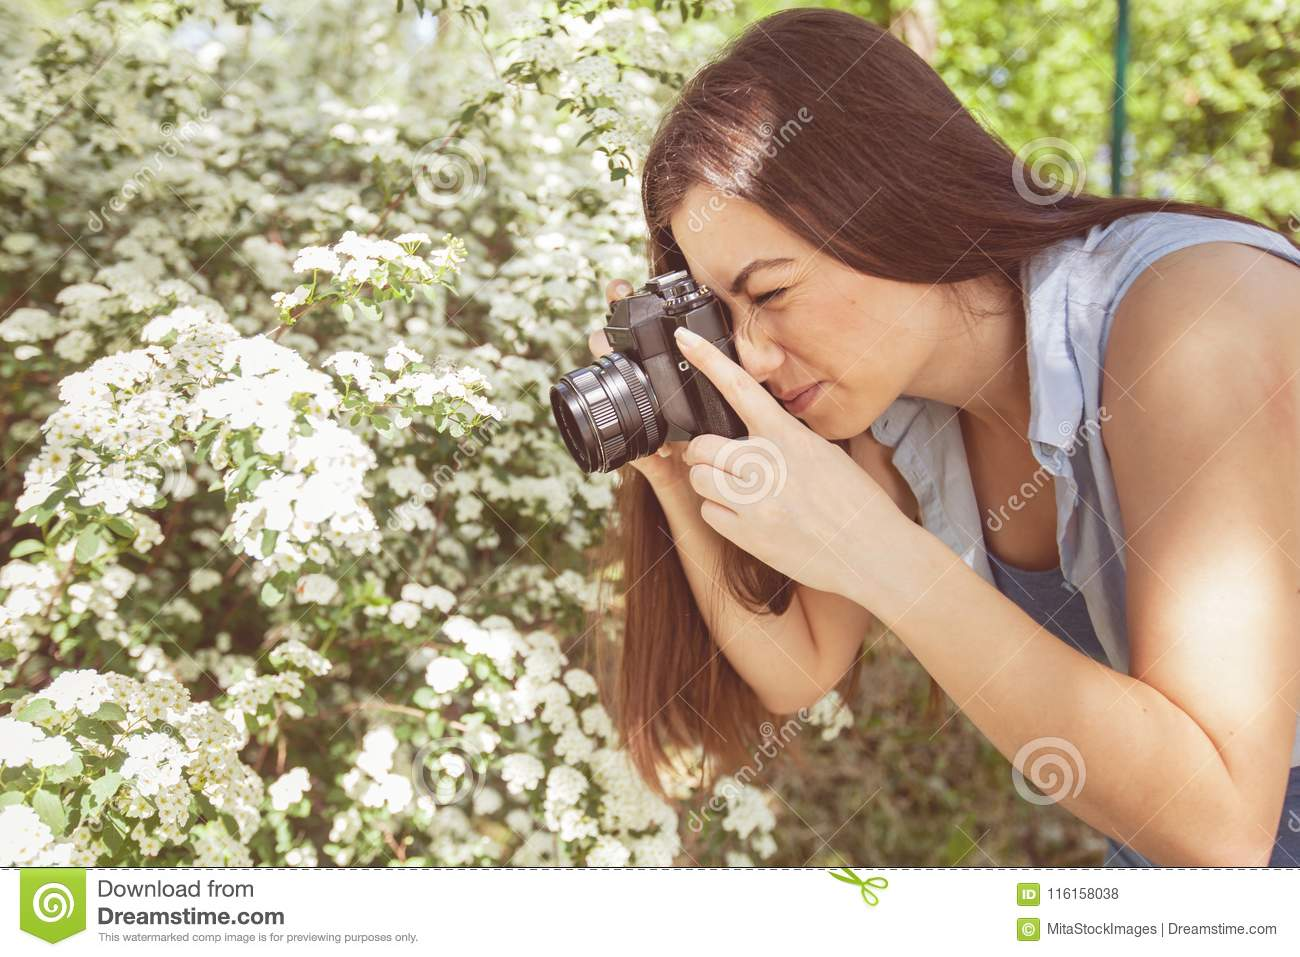 Female amateur photographer taking photo of flower with retro old camera in  summer park at beautiful sunny day